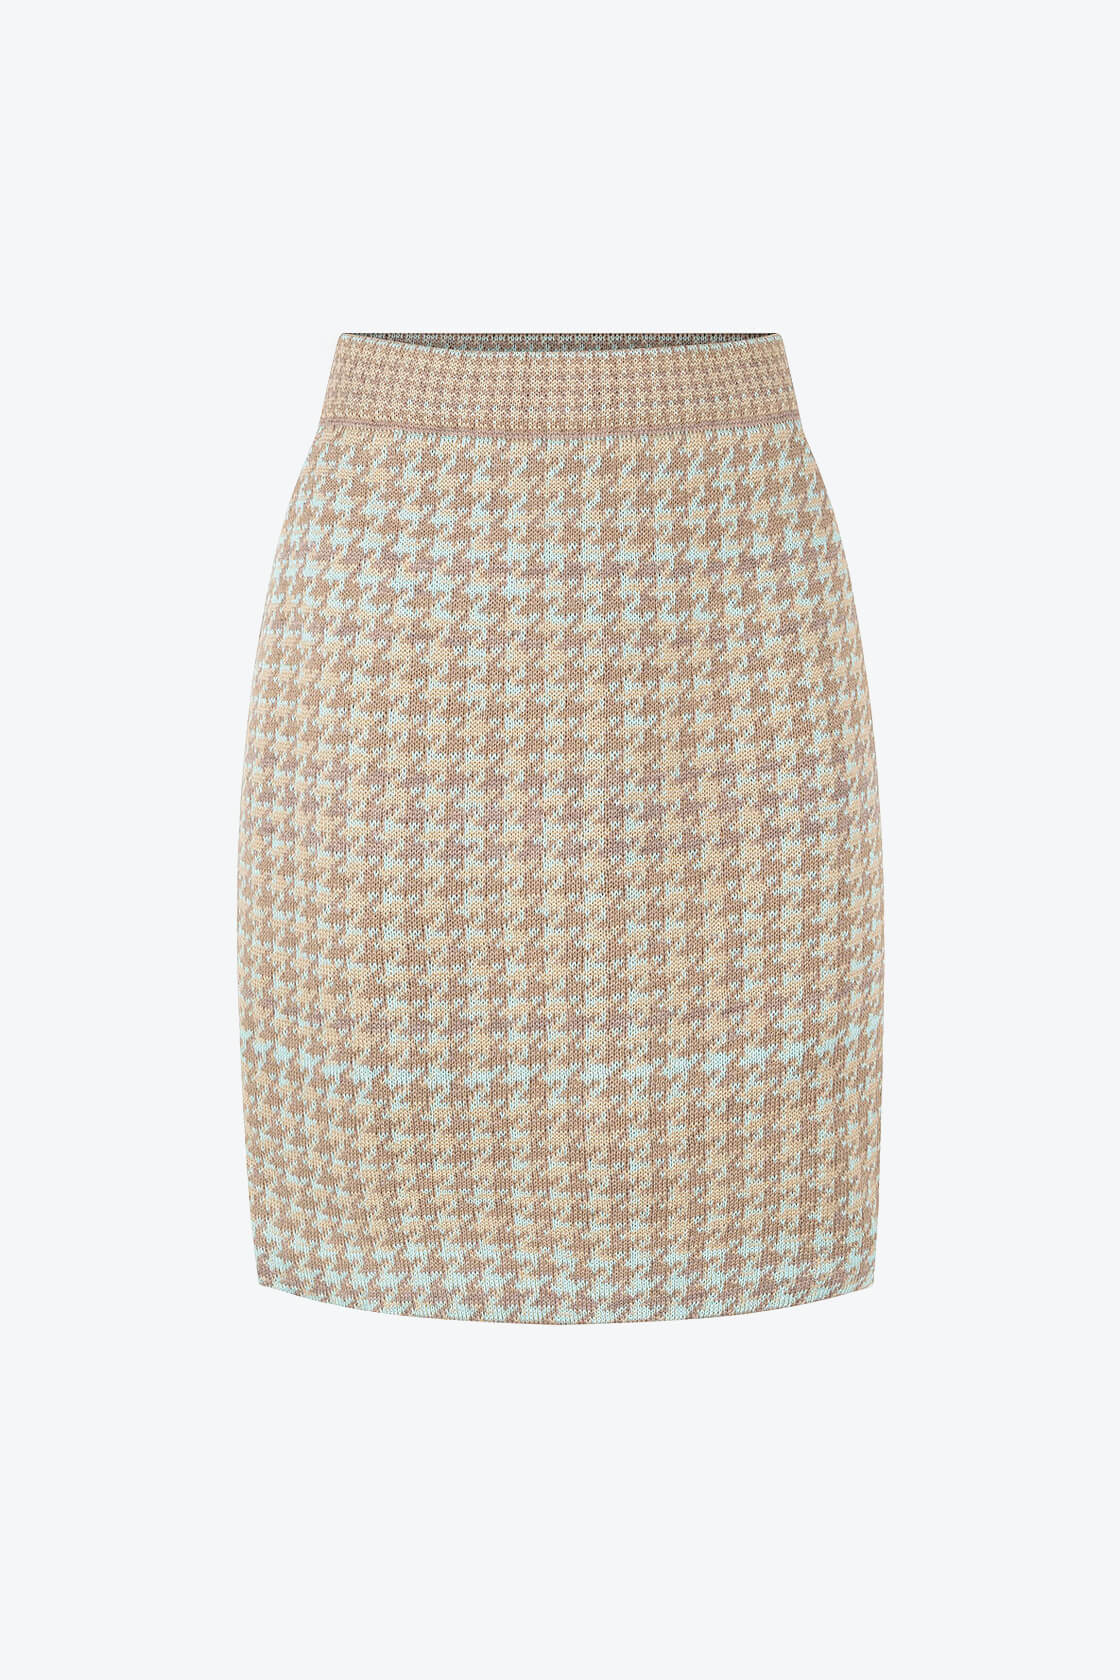 Knitted Knee Length Pencil Skirt In Pieds De Poule Pattern Tweed Fair